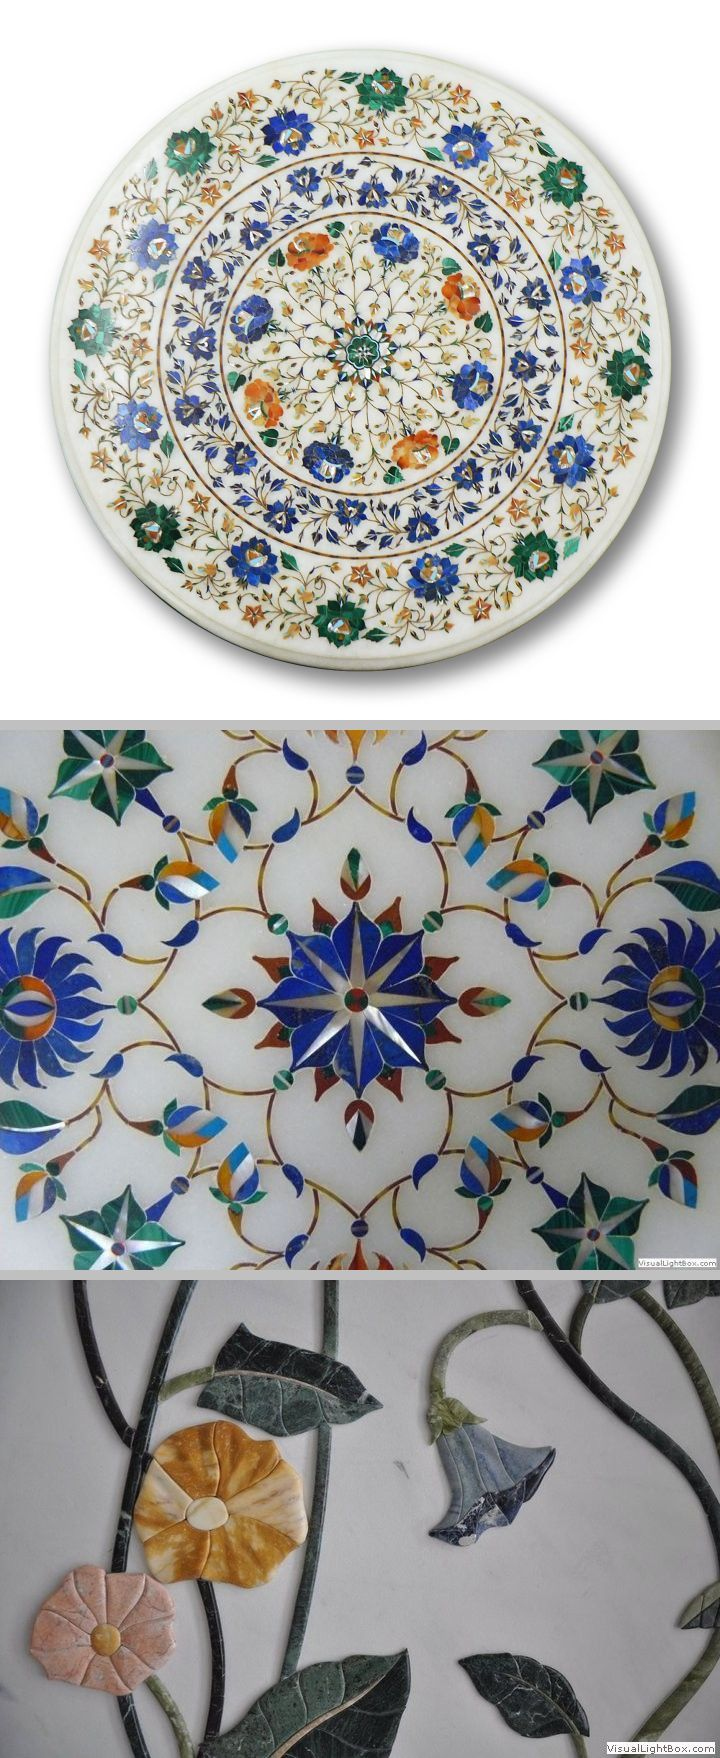 "Pietra Dura, a term derived from the Italian language meaning ""hard stone,"" is the technique of engraving artistic designs in marble and filling the troughs with finely cut precious / semi-precious stones.  Developed in Rome, pietra dura traveled to Persia and then to India.  The Taj Mahal of India & the Basilica of San Lorenzo in Florence are enduring legacies of this exquisite art form.  #heritage #culture"